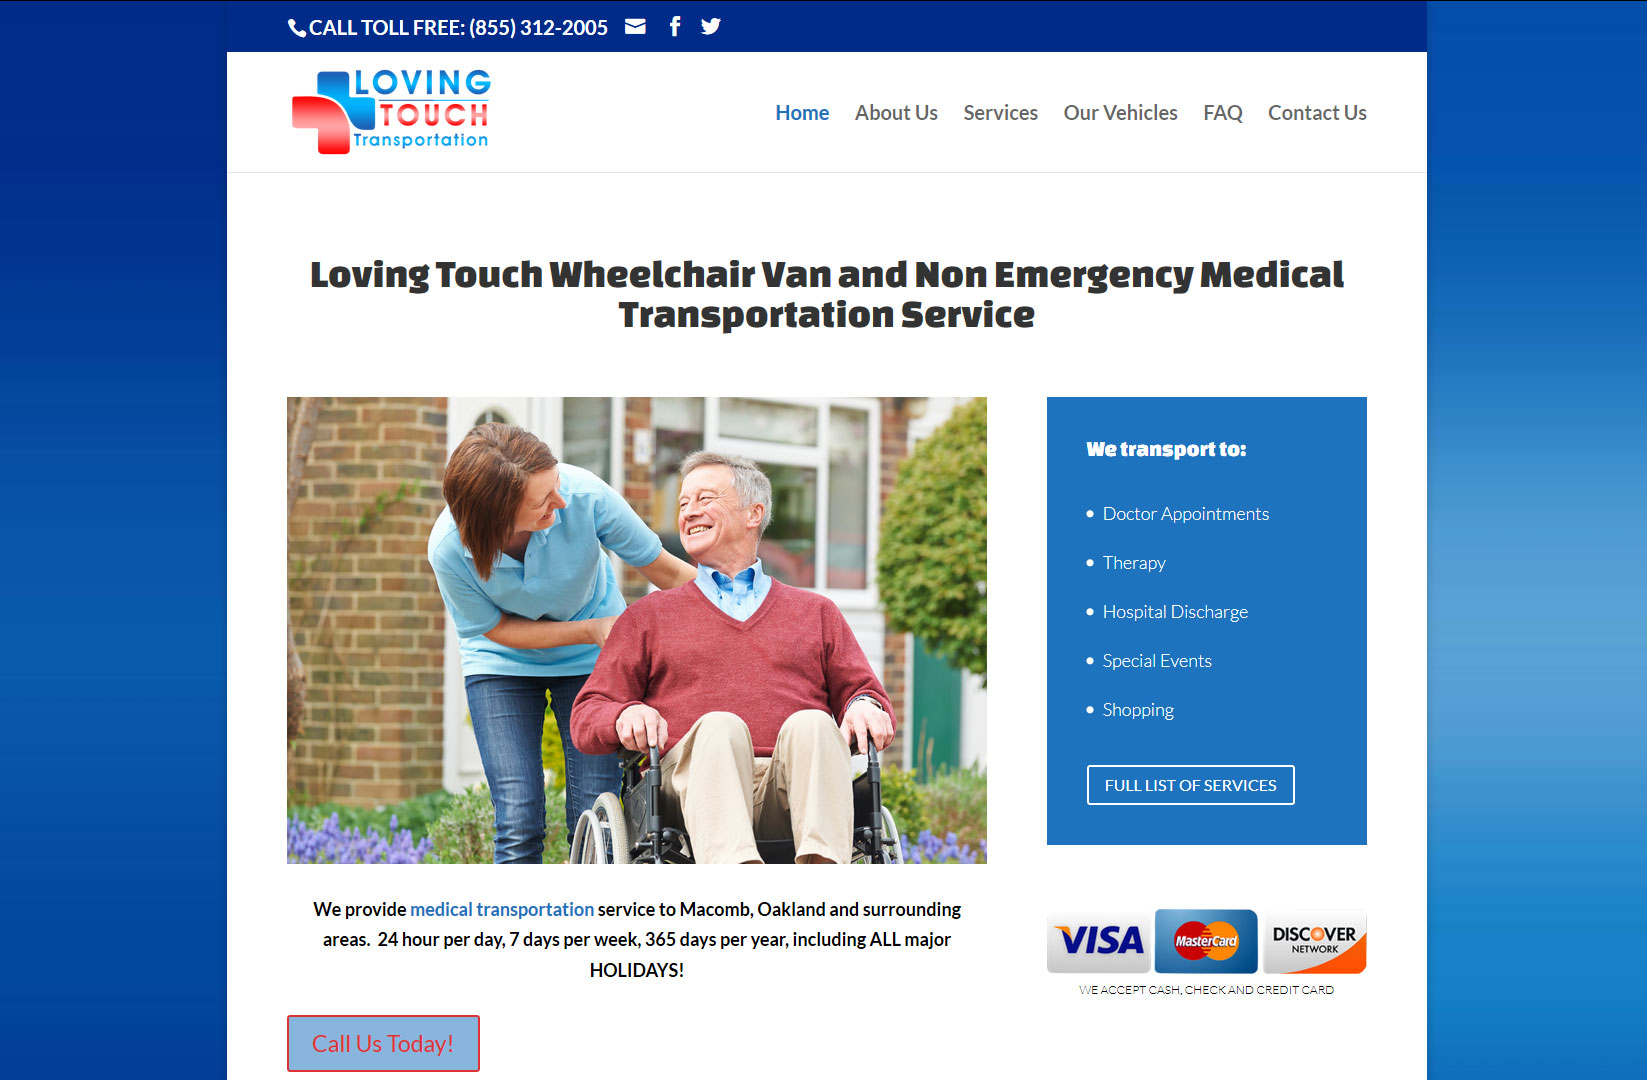 Loving Touch Transportation